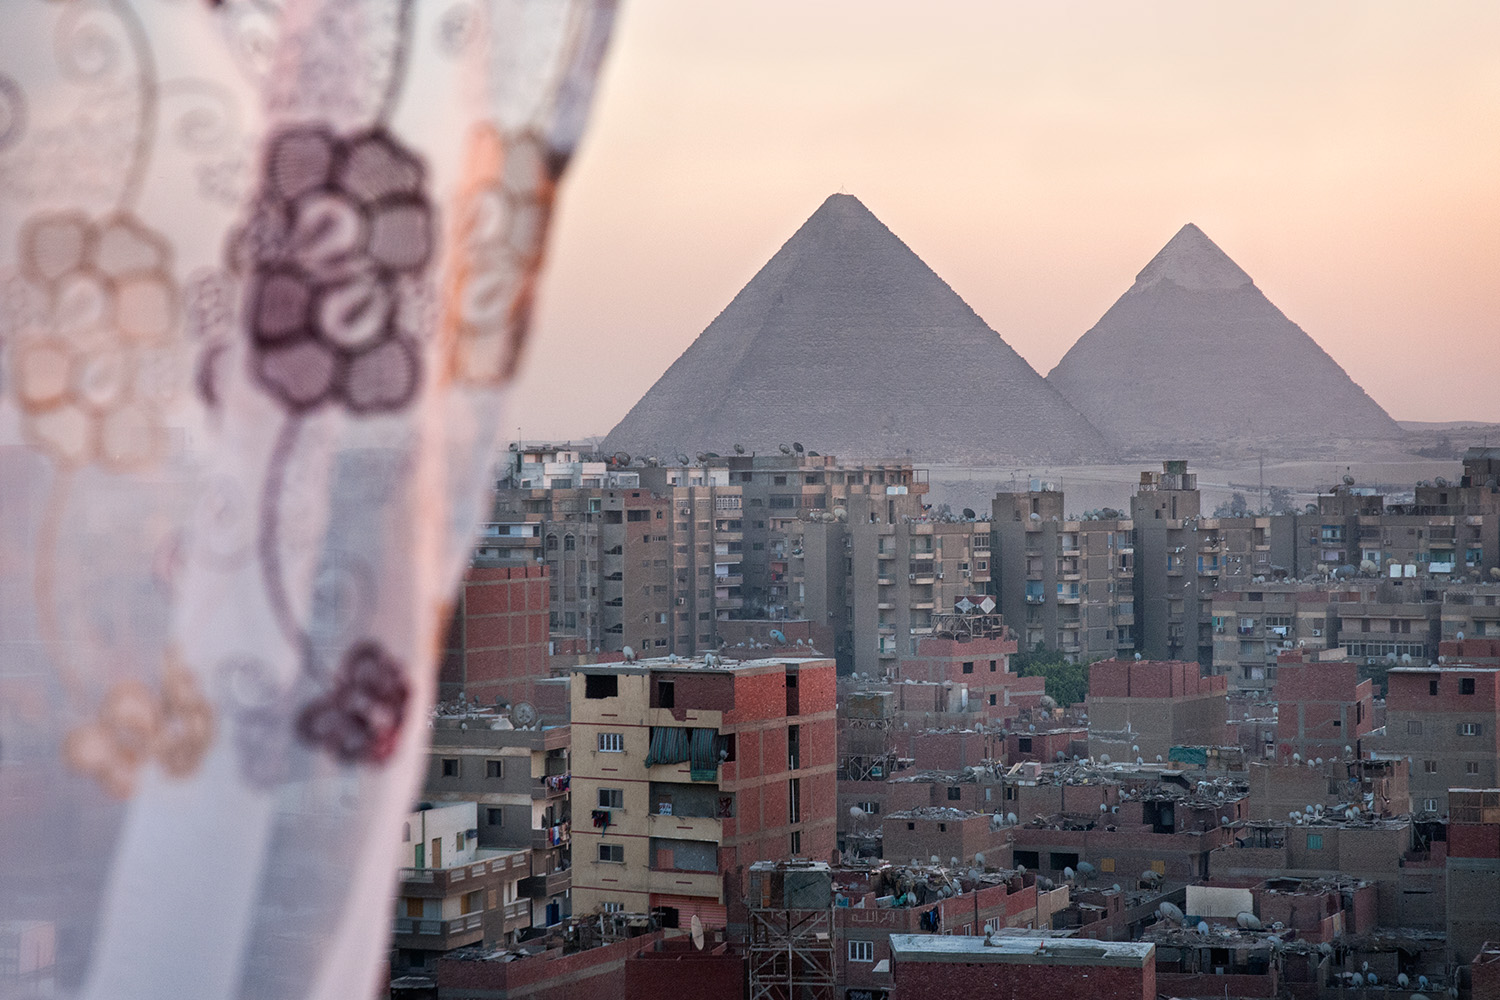 Cairo is a home place for around 20 millions of inhabitants. Nobody knows the exact number. Looking for livelihood and better living conditions Egyptians migrate to the capital and occupy every possible space: unfinished buildings, rooftops and even cementery.   Cairo Private is a journey through different Cairenes homes. Egyptians are very hospitable – they proudly invite one to their private spaces, always regale tea or food as well their life stories.   *  Excerpt. For full edit please contact: ania.egypt@gmail.com